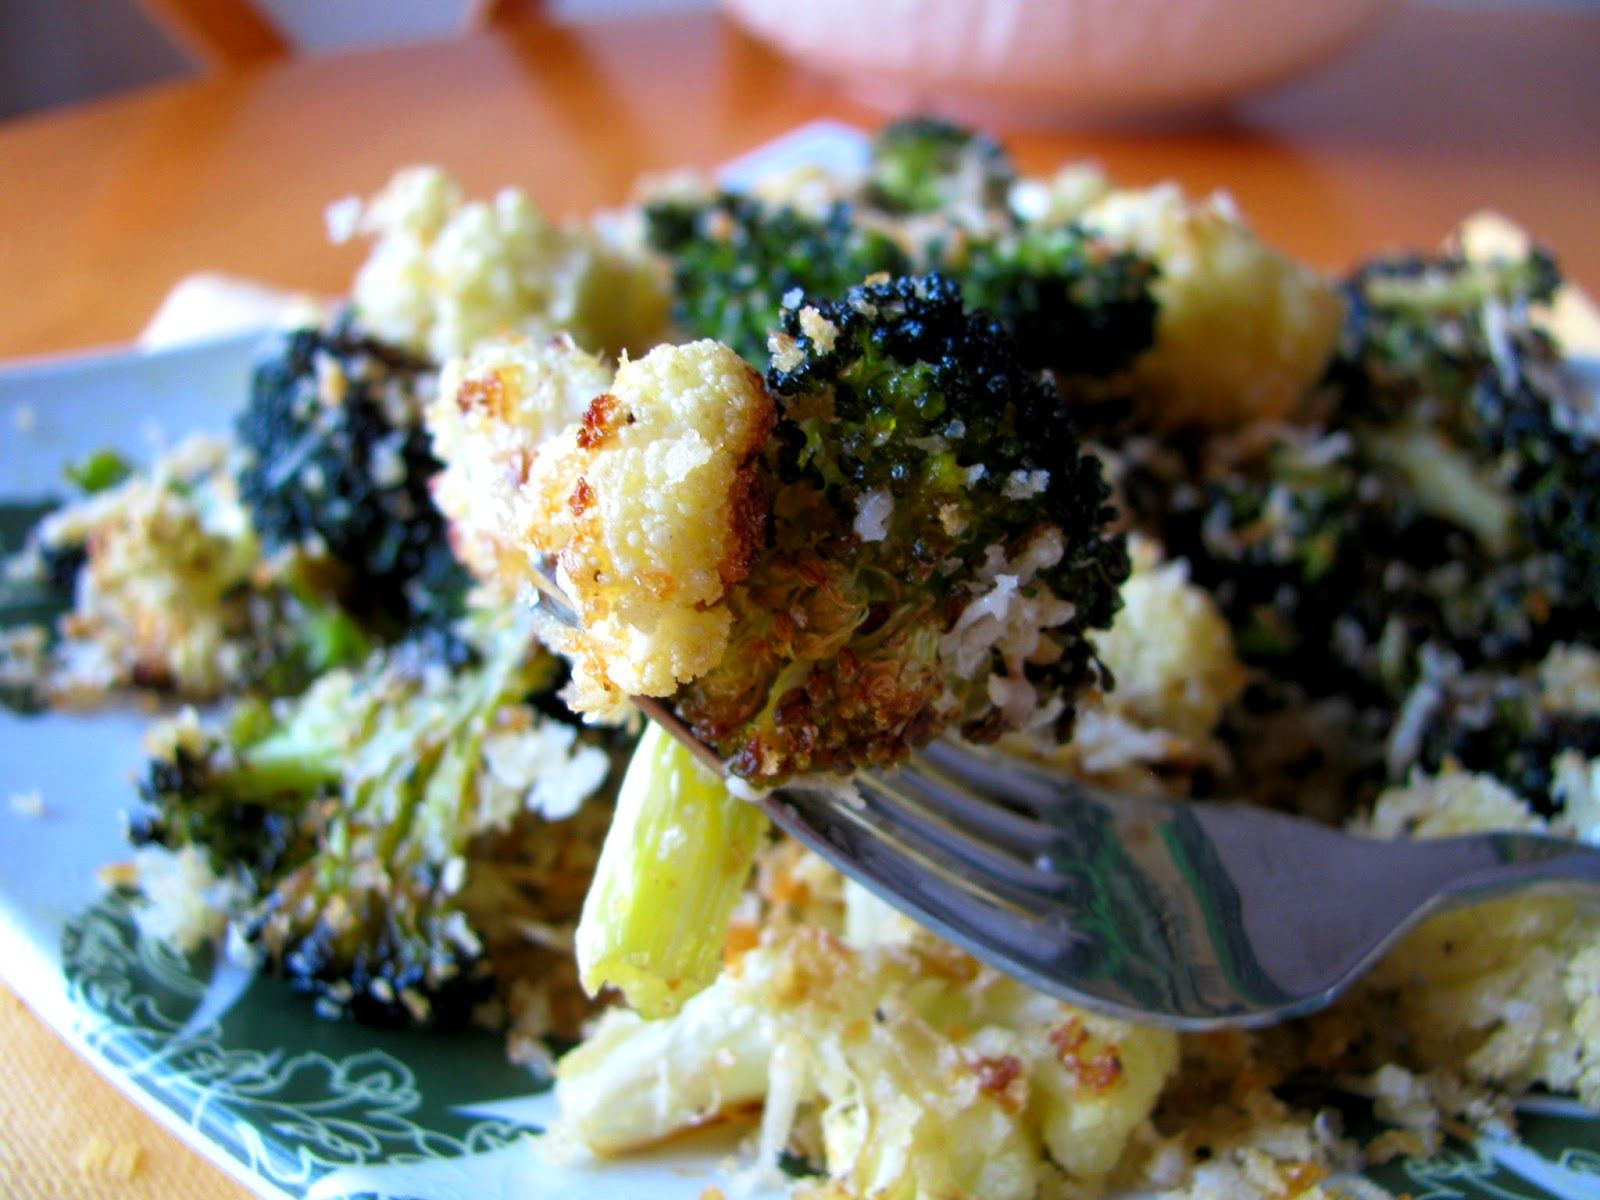 California Blend Vegetables With Parmesan Bread Crumbs A Mixture